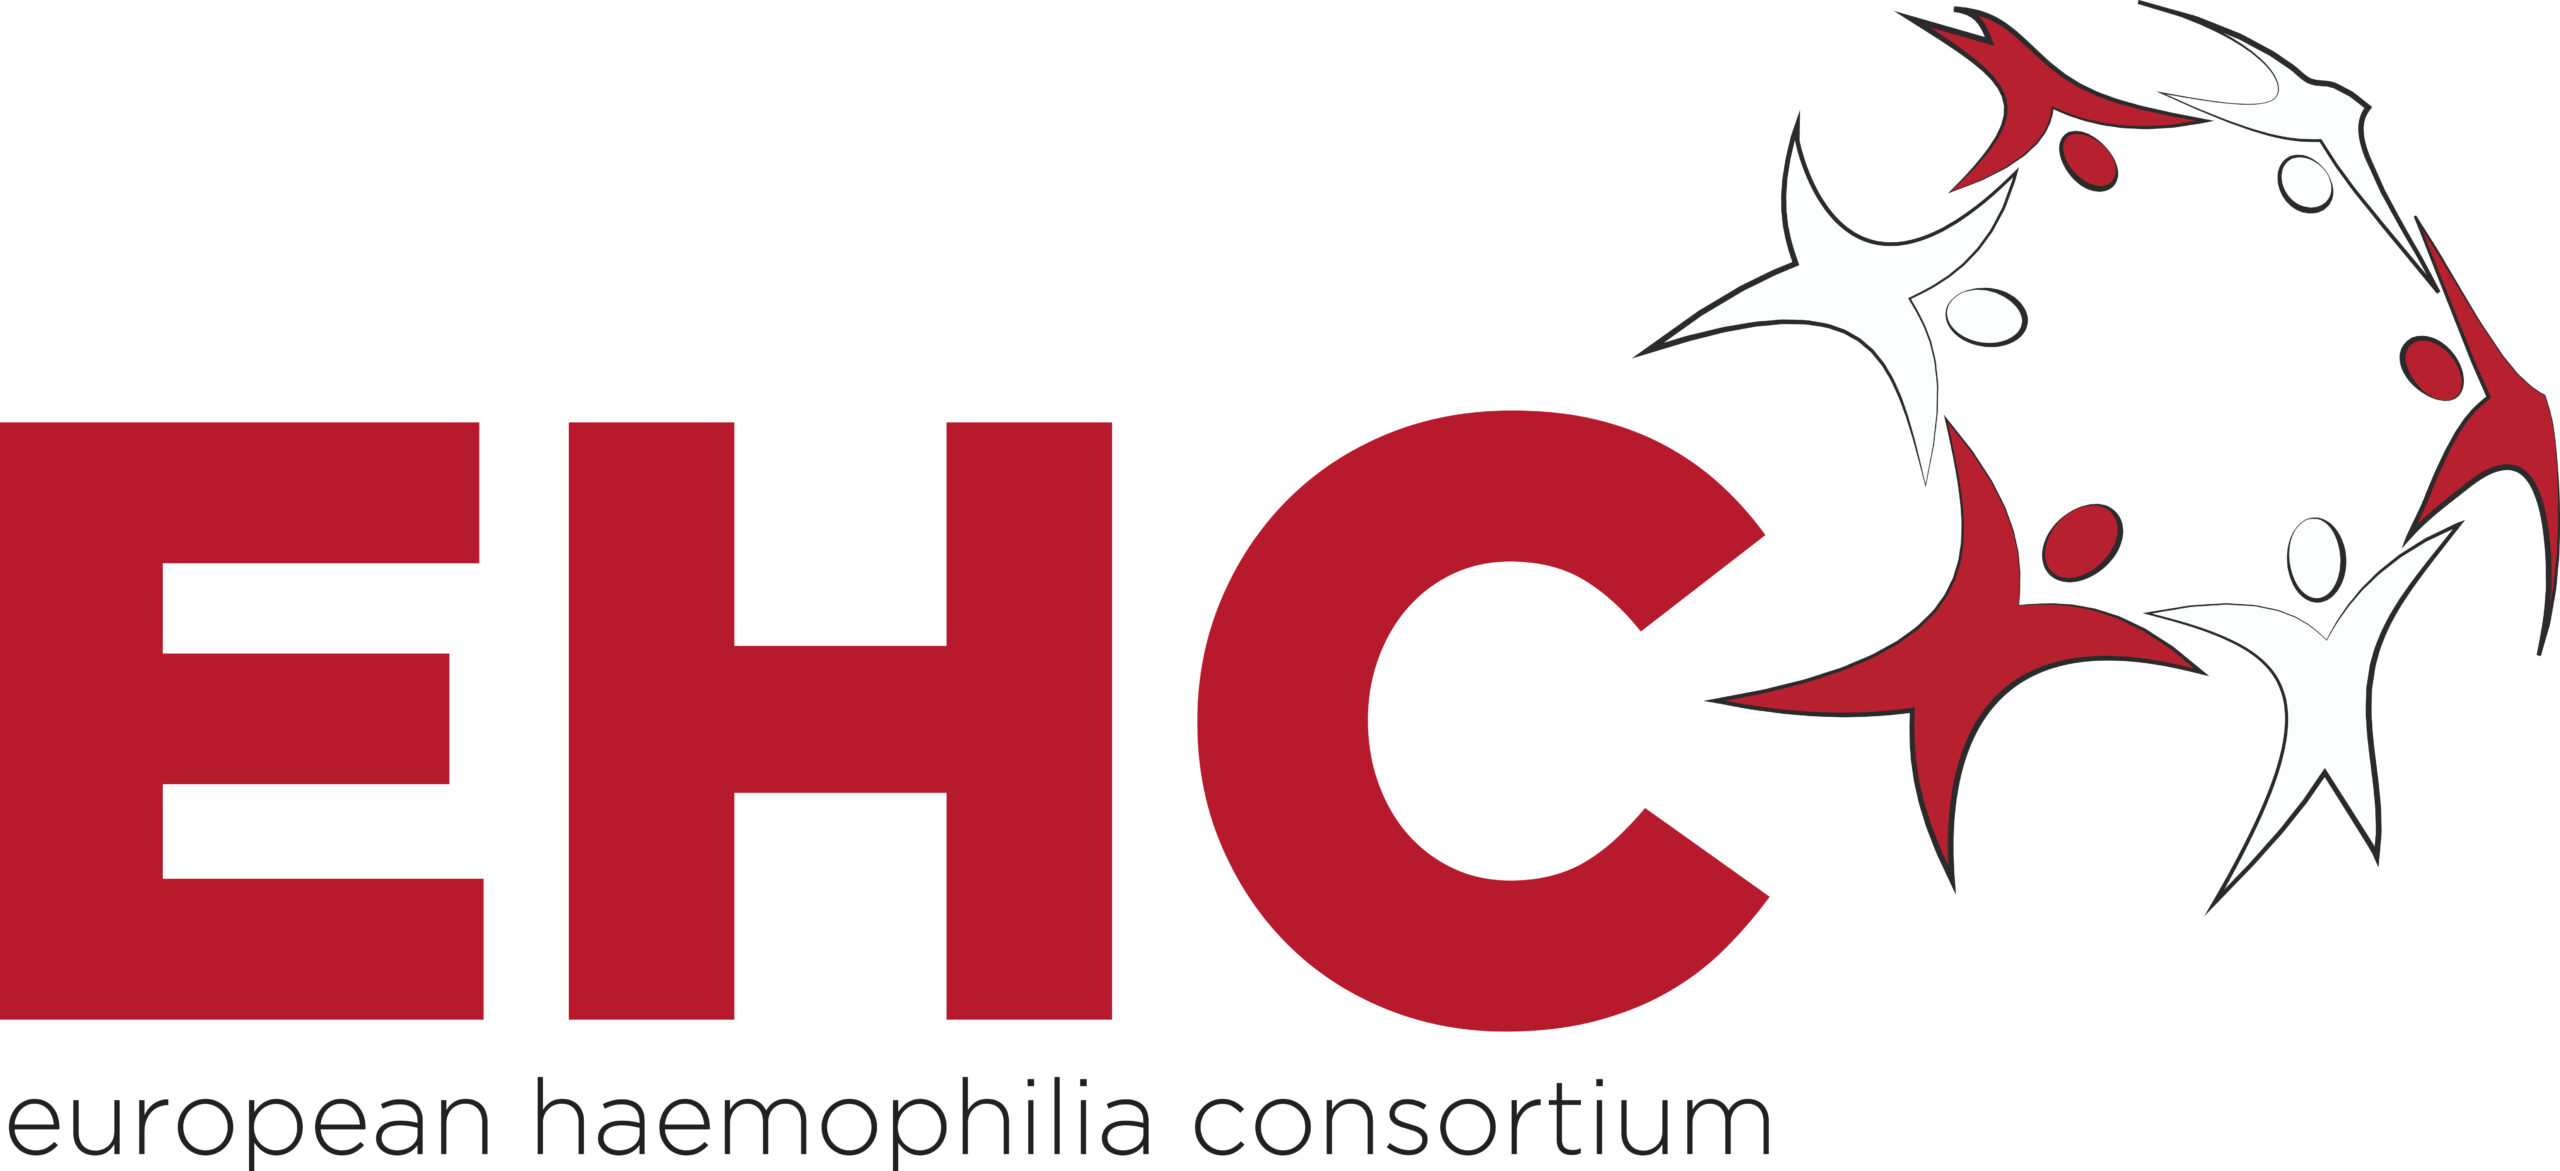 EHC – European Haemophilia Consortium -  - /about-ehc/governance/committees/von-willebrand-disease-working-group/